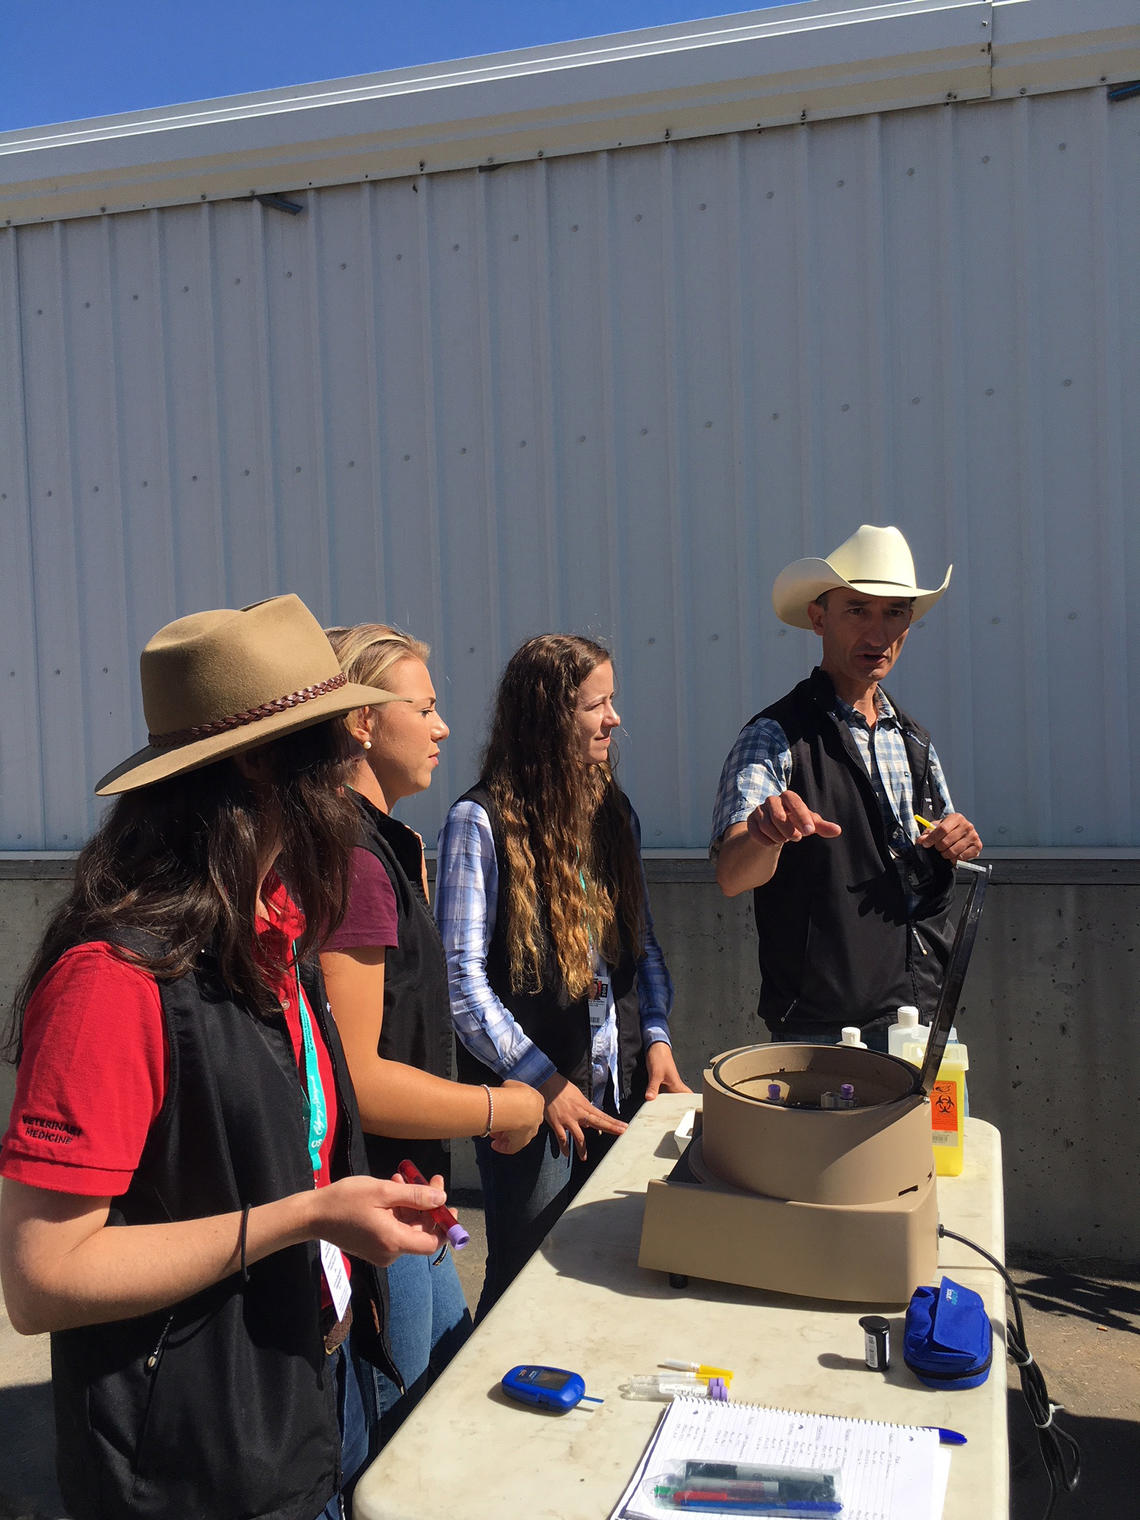 Renaud Léguillette and his team prepare a blood sample at the Calgary Stampede.